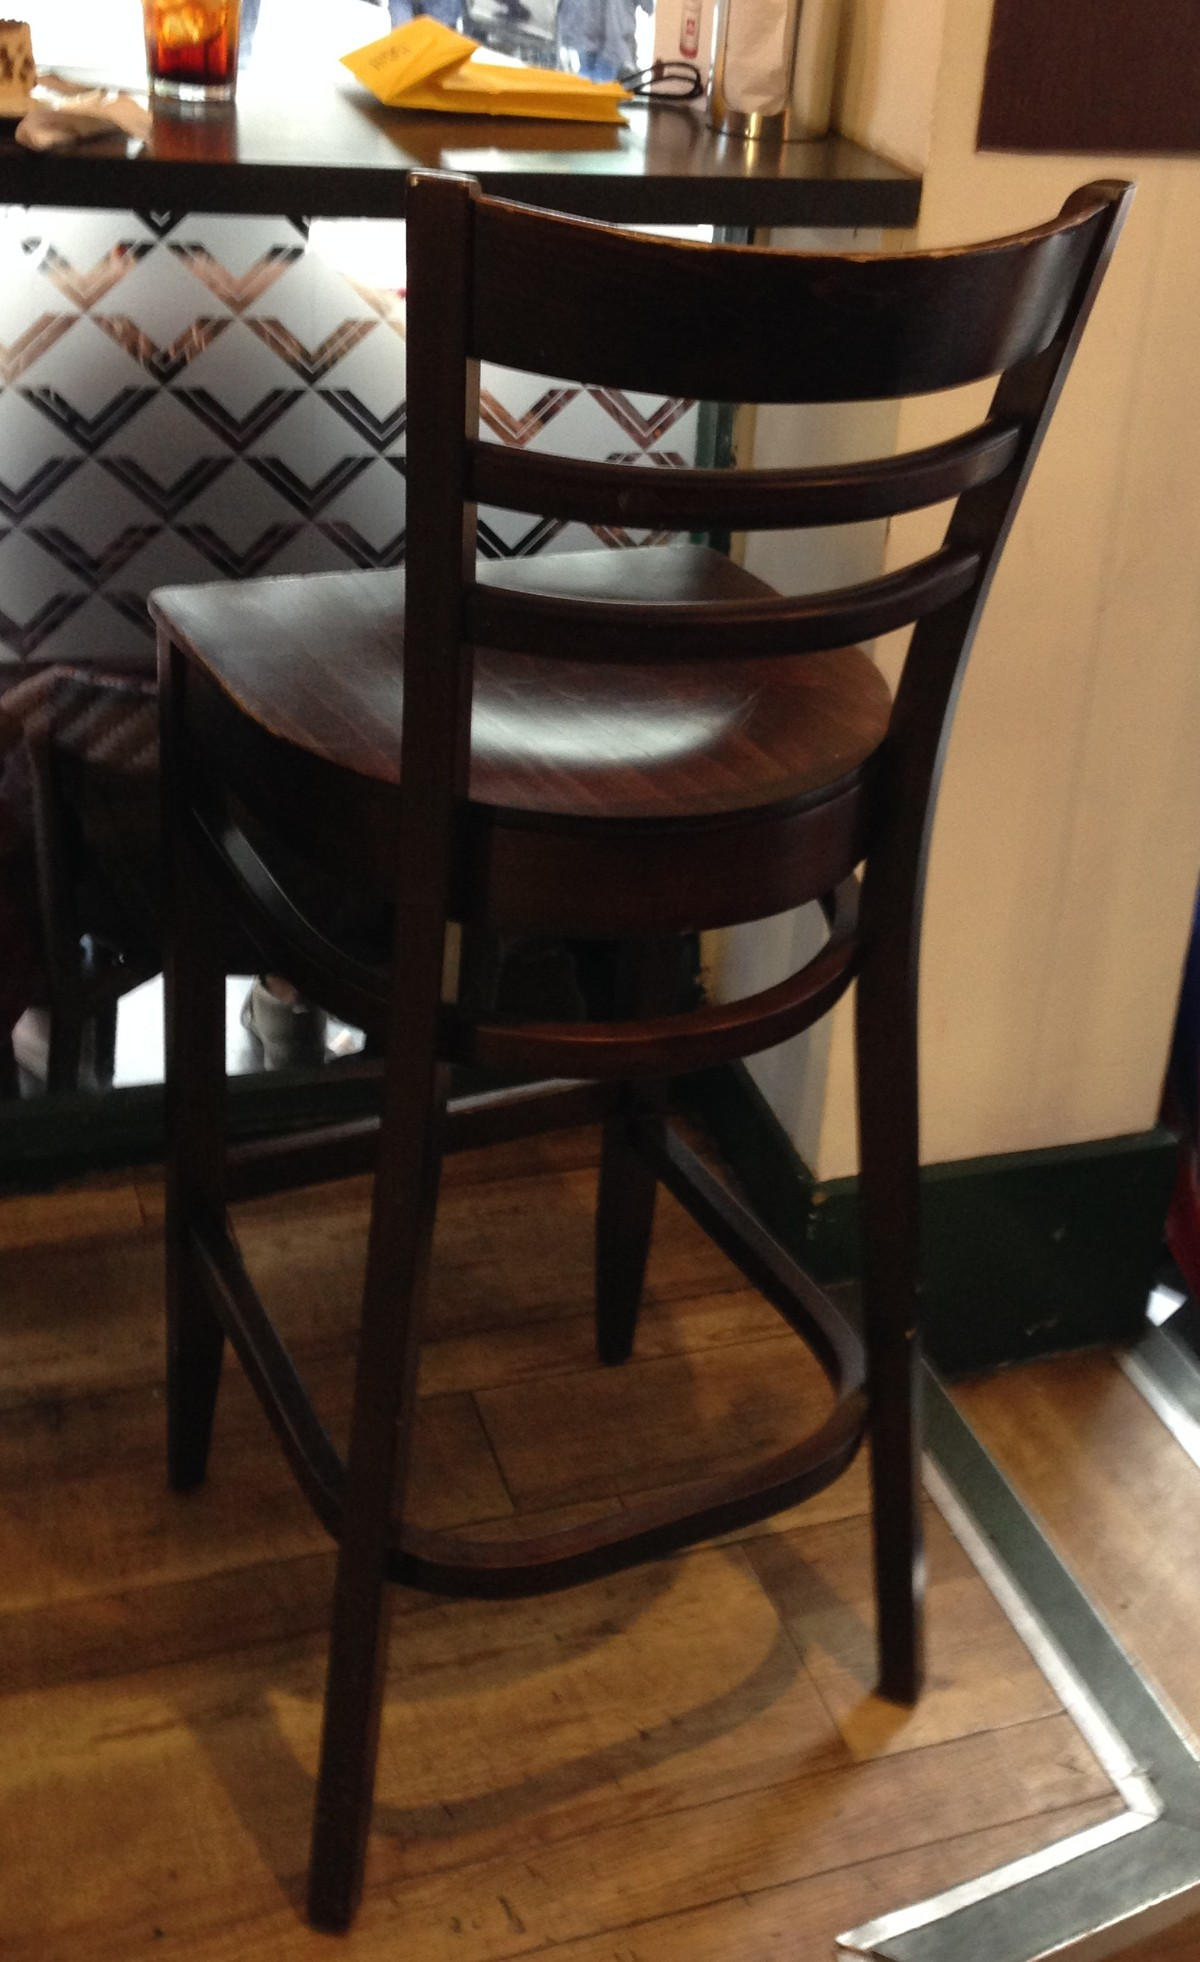 secondhand pub equipment chairs wood table chair with matching bar stool london. Black Bedroom Furniture Sets. Home Design Ideas